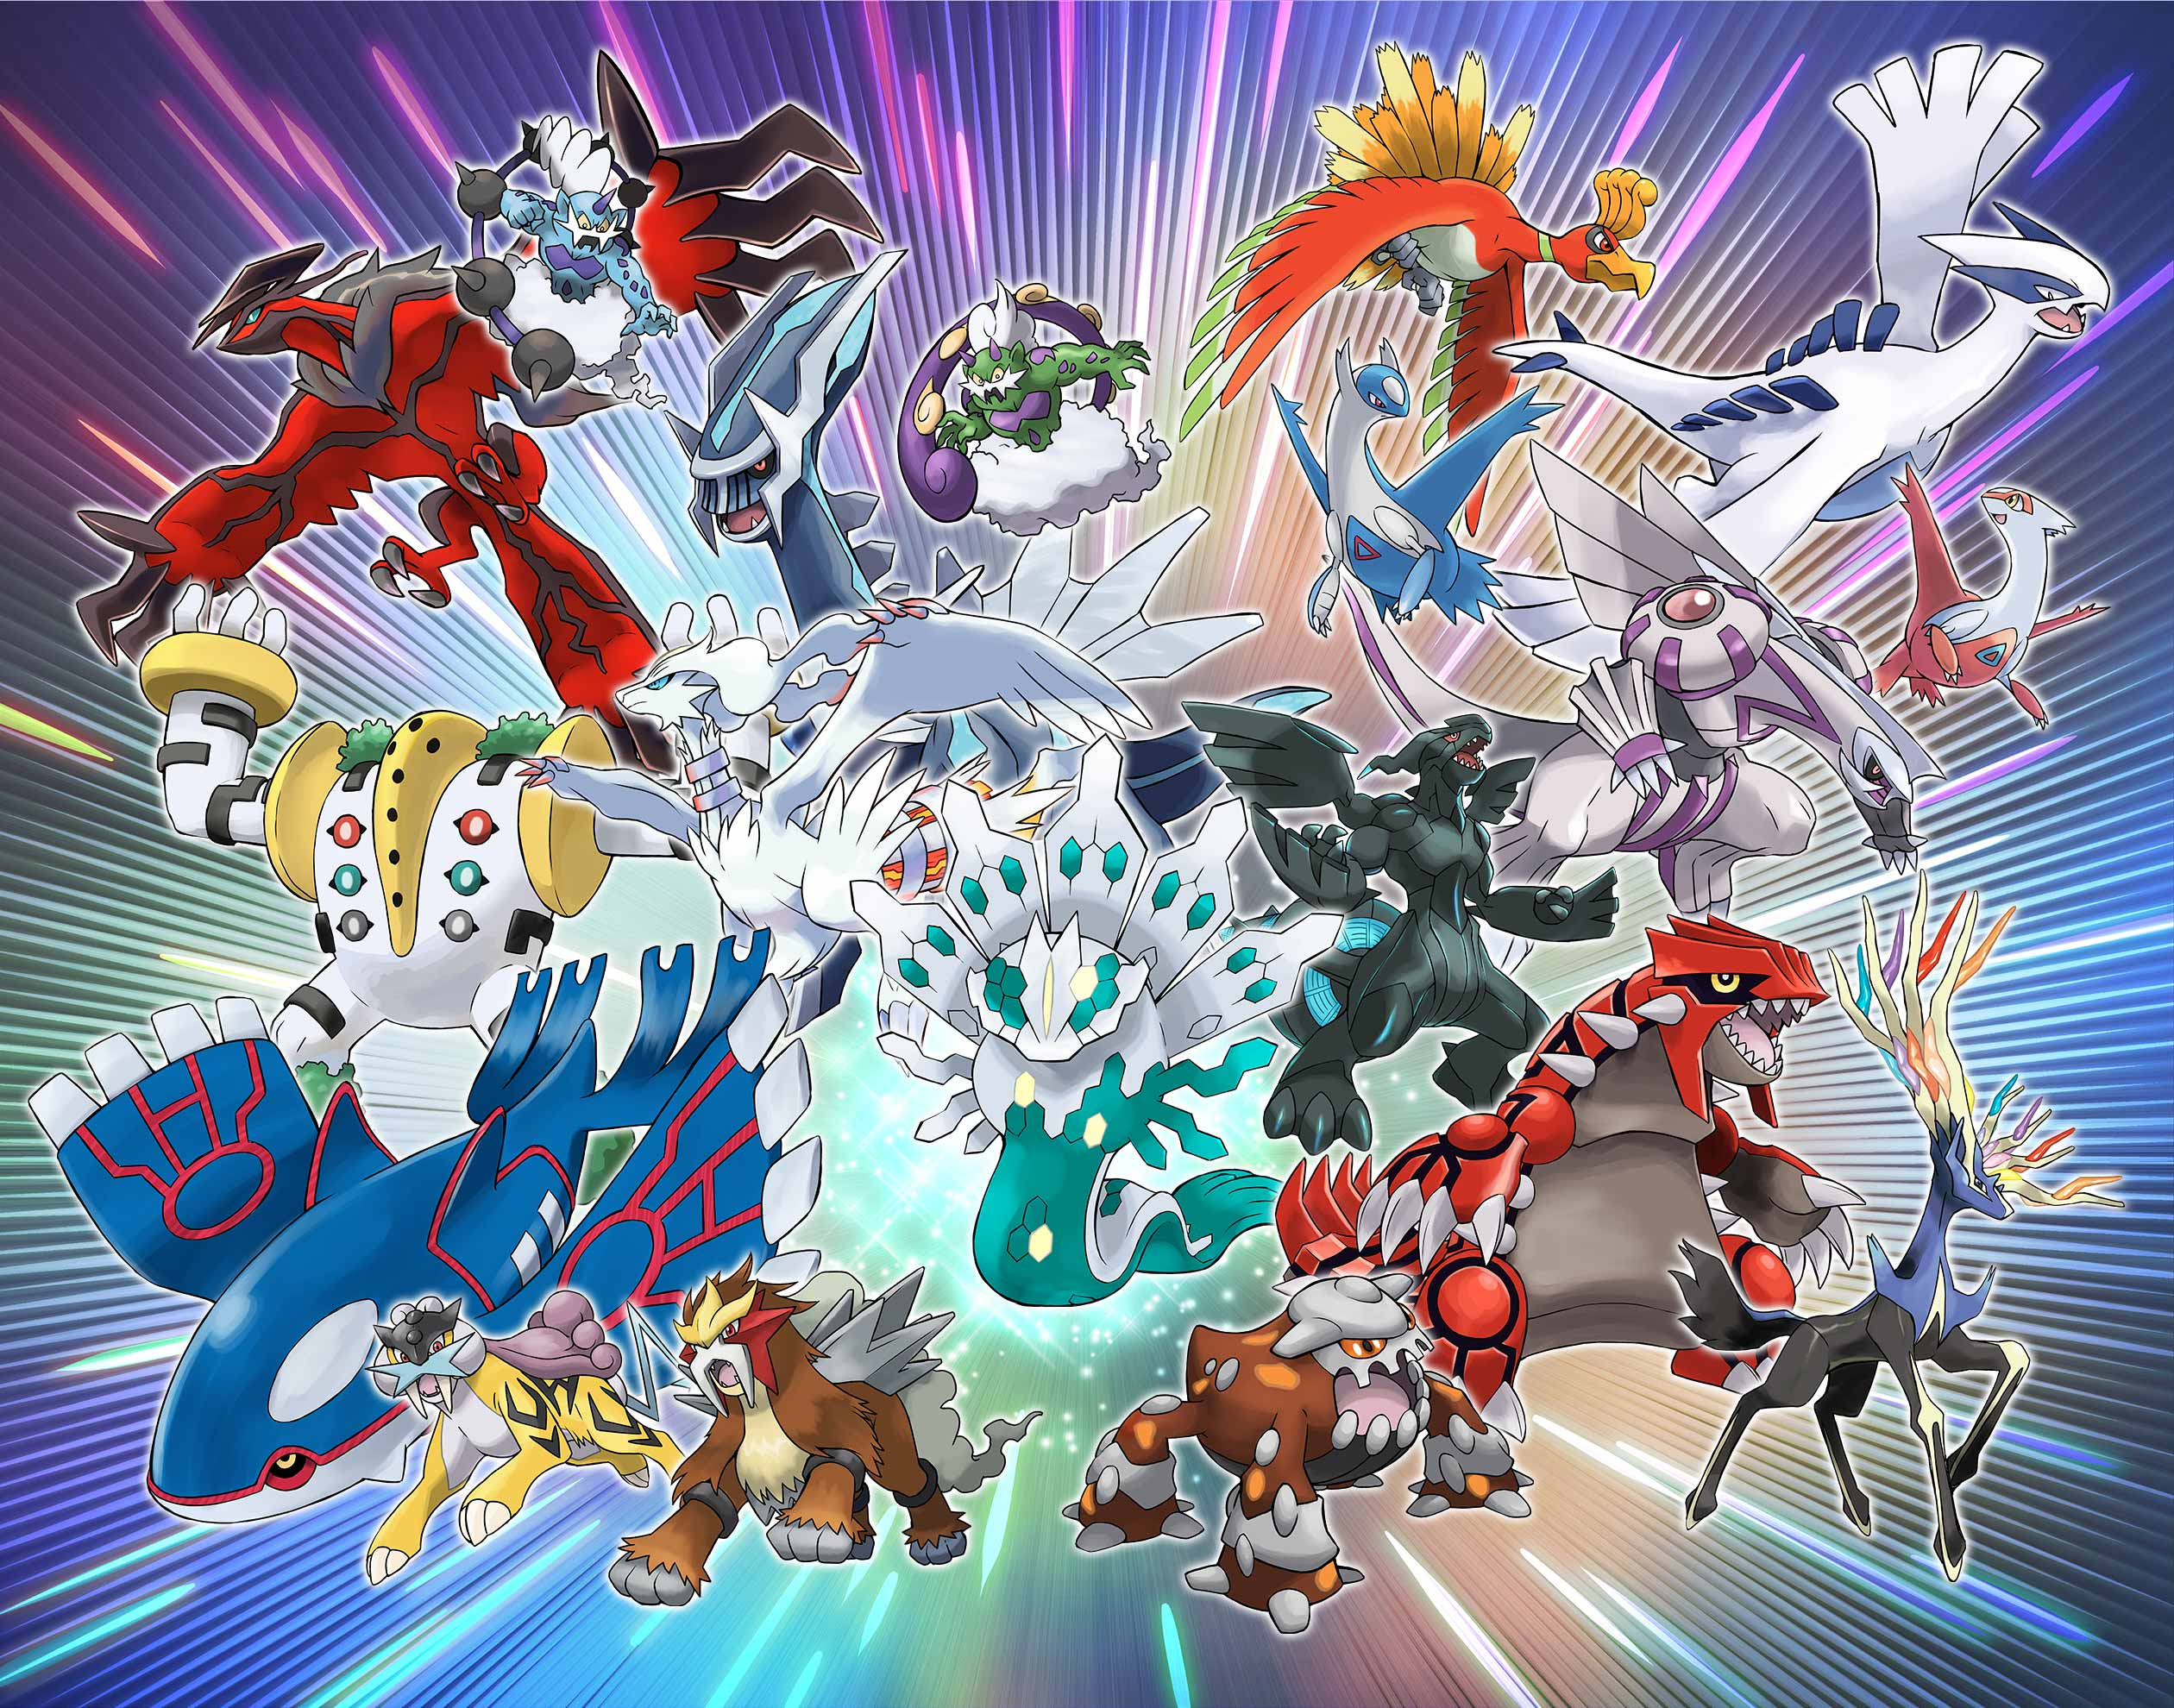 How to Get the 2018 Legendary Pokemon In the 3DS Games | Inverse